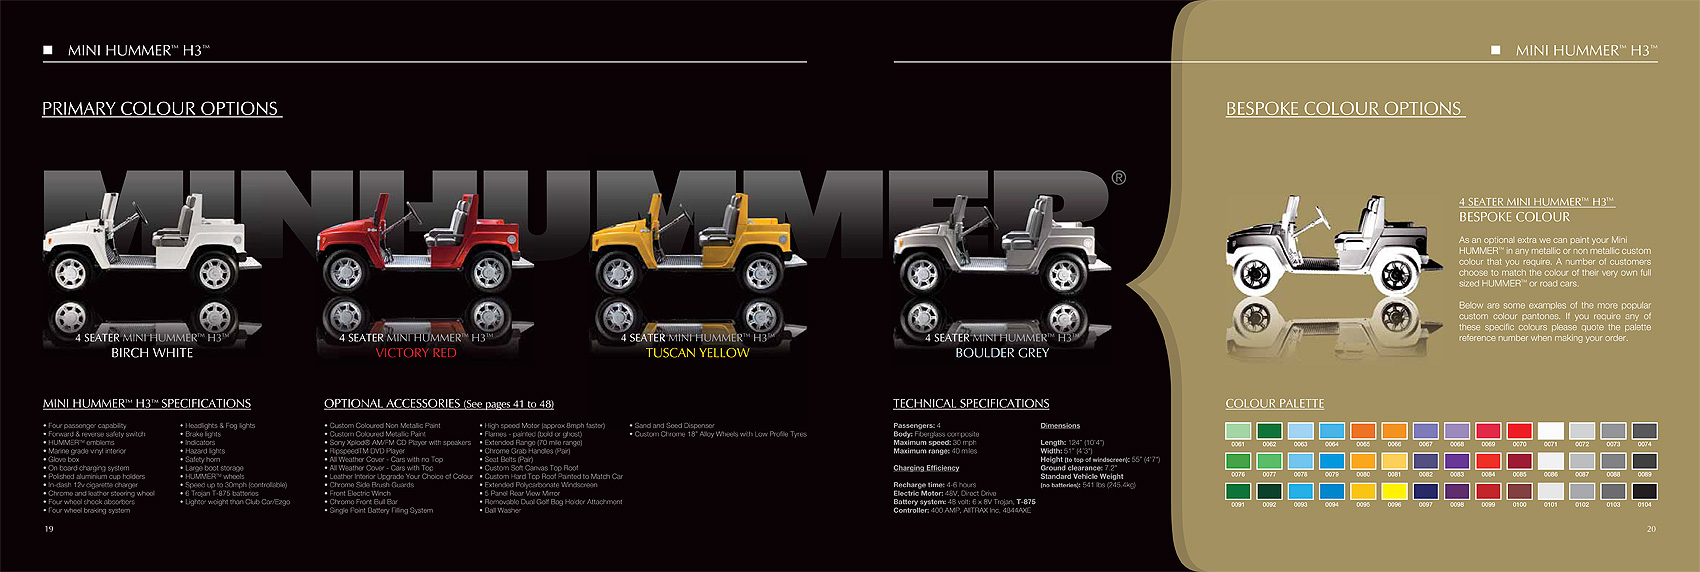 Hummer H3 brochure photography